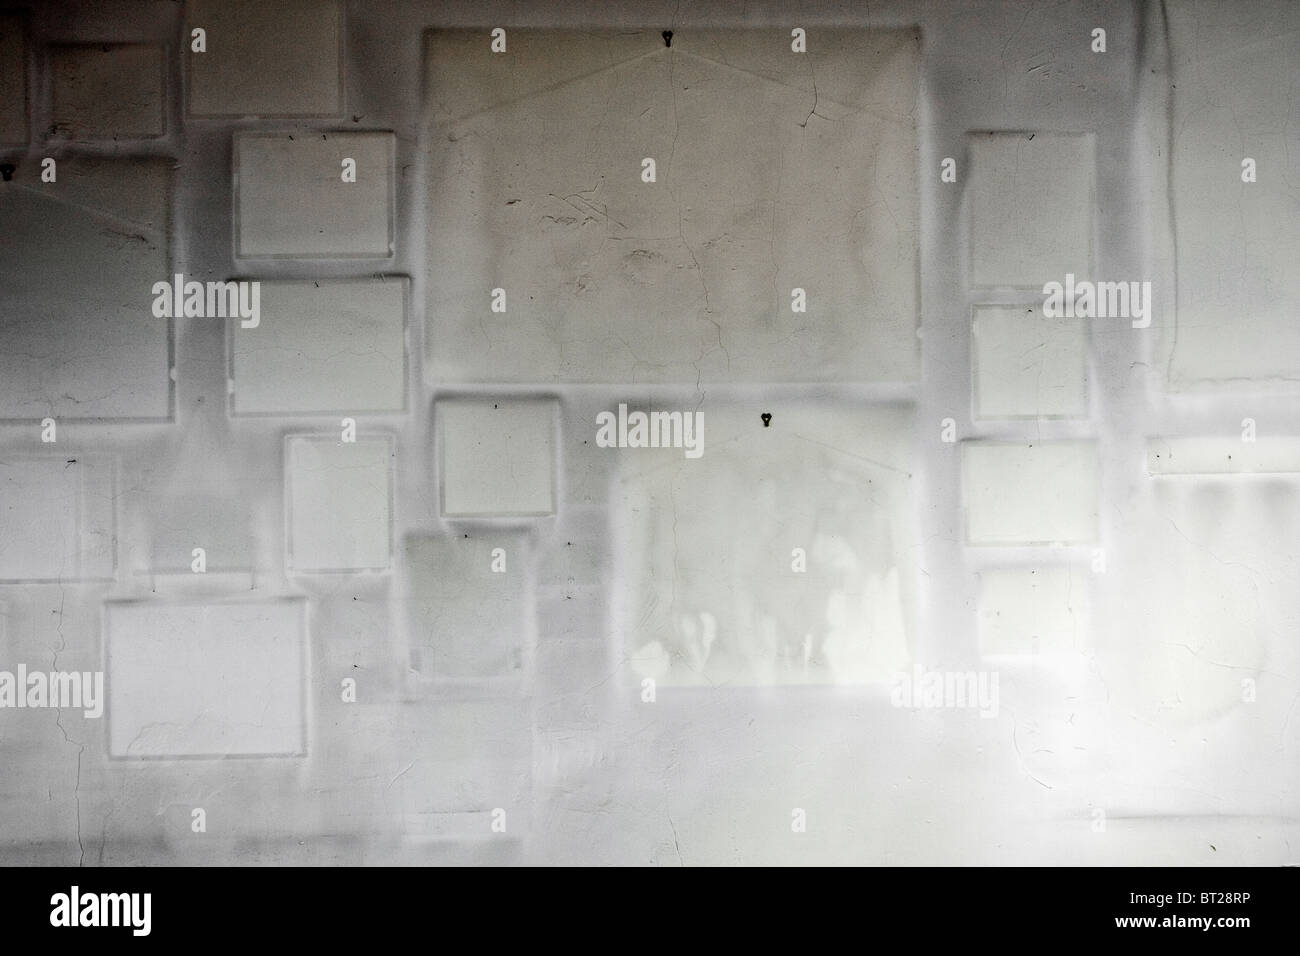 White wall void of hanging art with frame imprints left behind - Stock Image